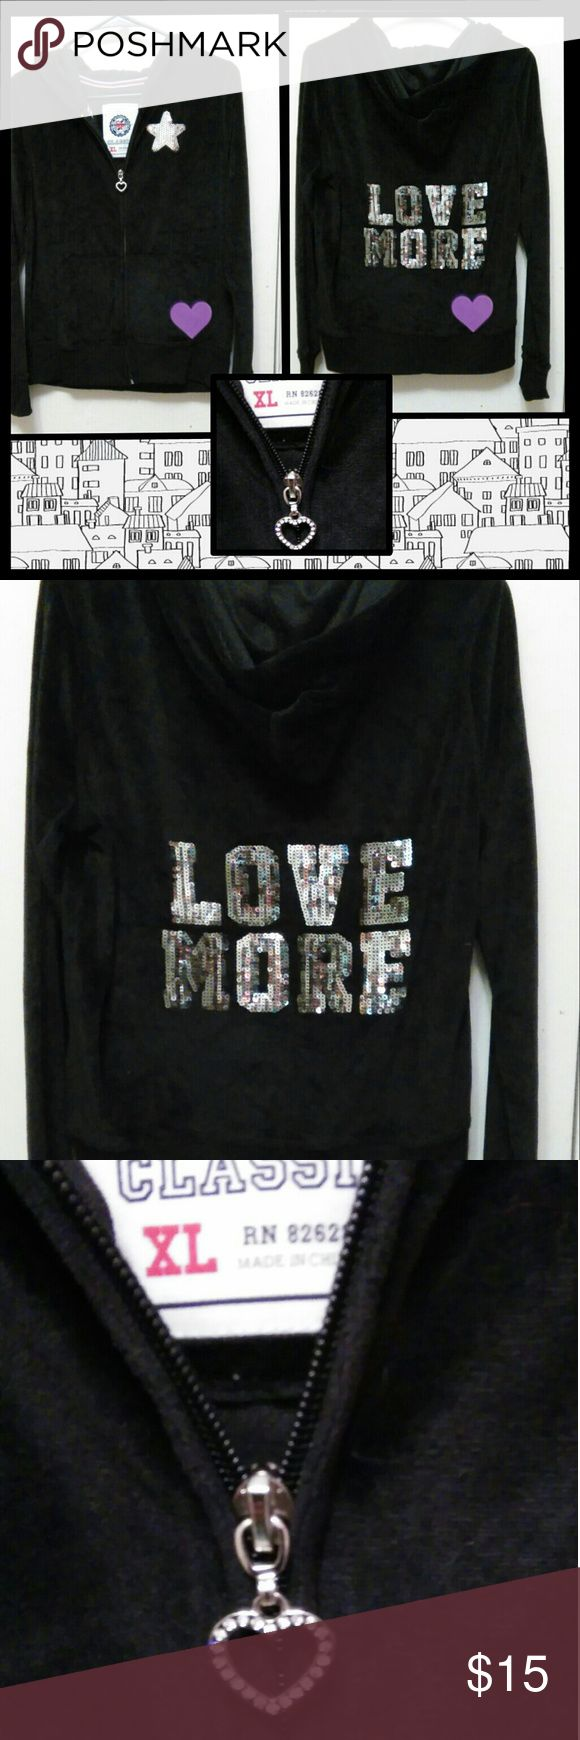 ,🎊New listing🎊 Adorable sequined black hoodie Sz x/l but fits m/l better.... EUC.. see no flaws.... Smoke free home Tops Sweatshirts & Hoodies